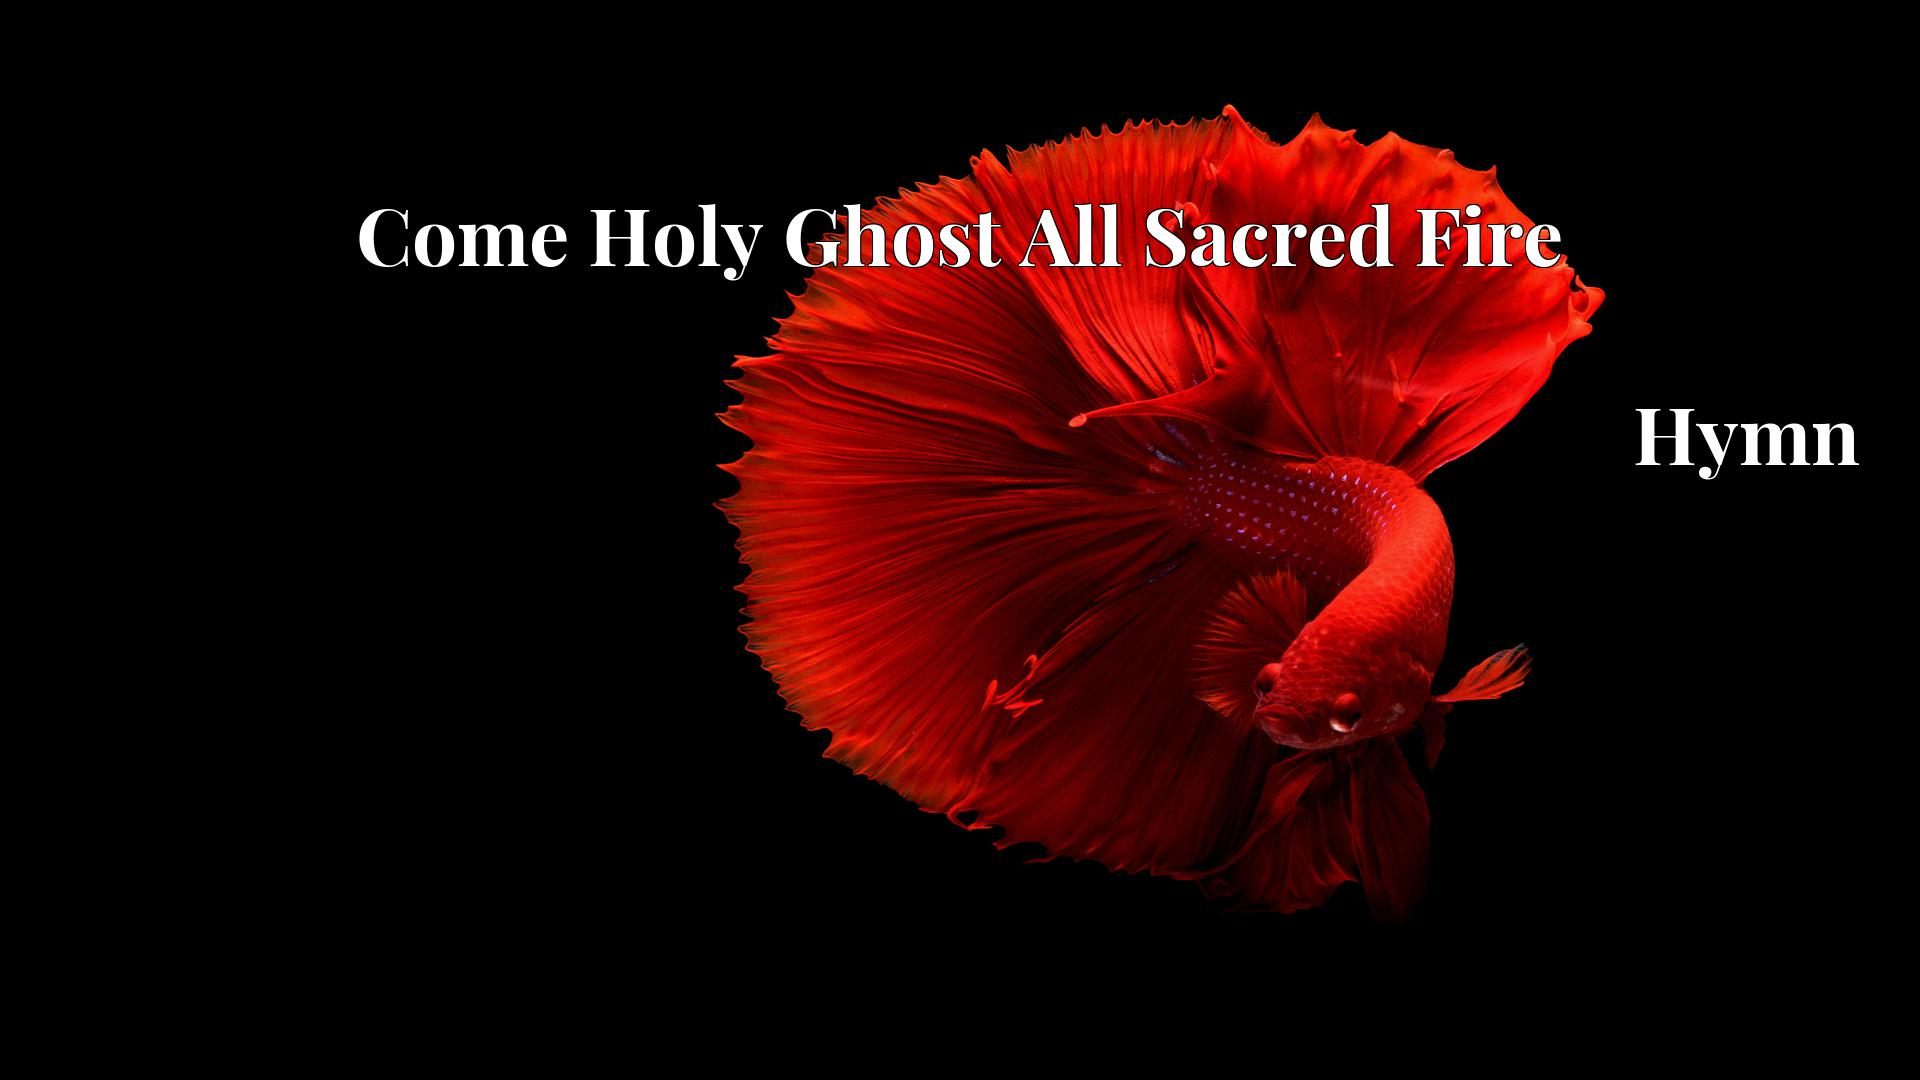 Come Holy Ghost All Sacred Fire - Hymn